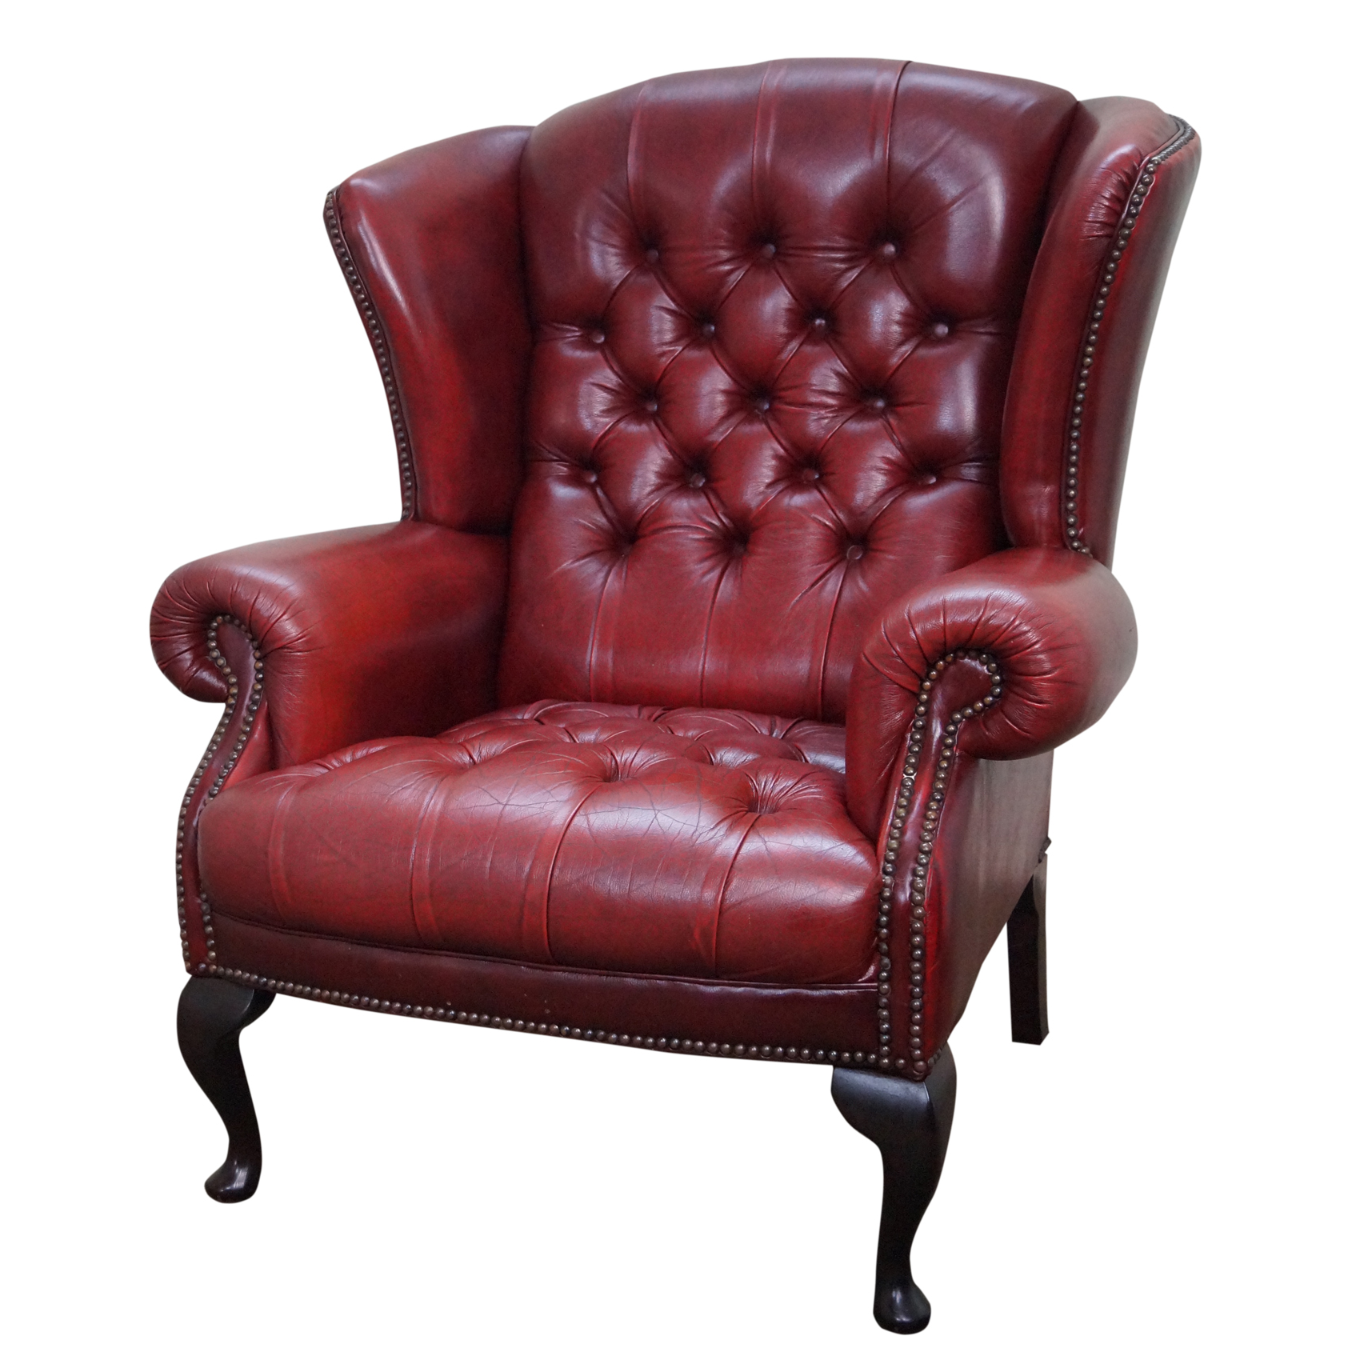 english tufted leather chesterfield wingback chair chairish. Black Bedroom Furniture Sets. Home Design Ideas